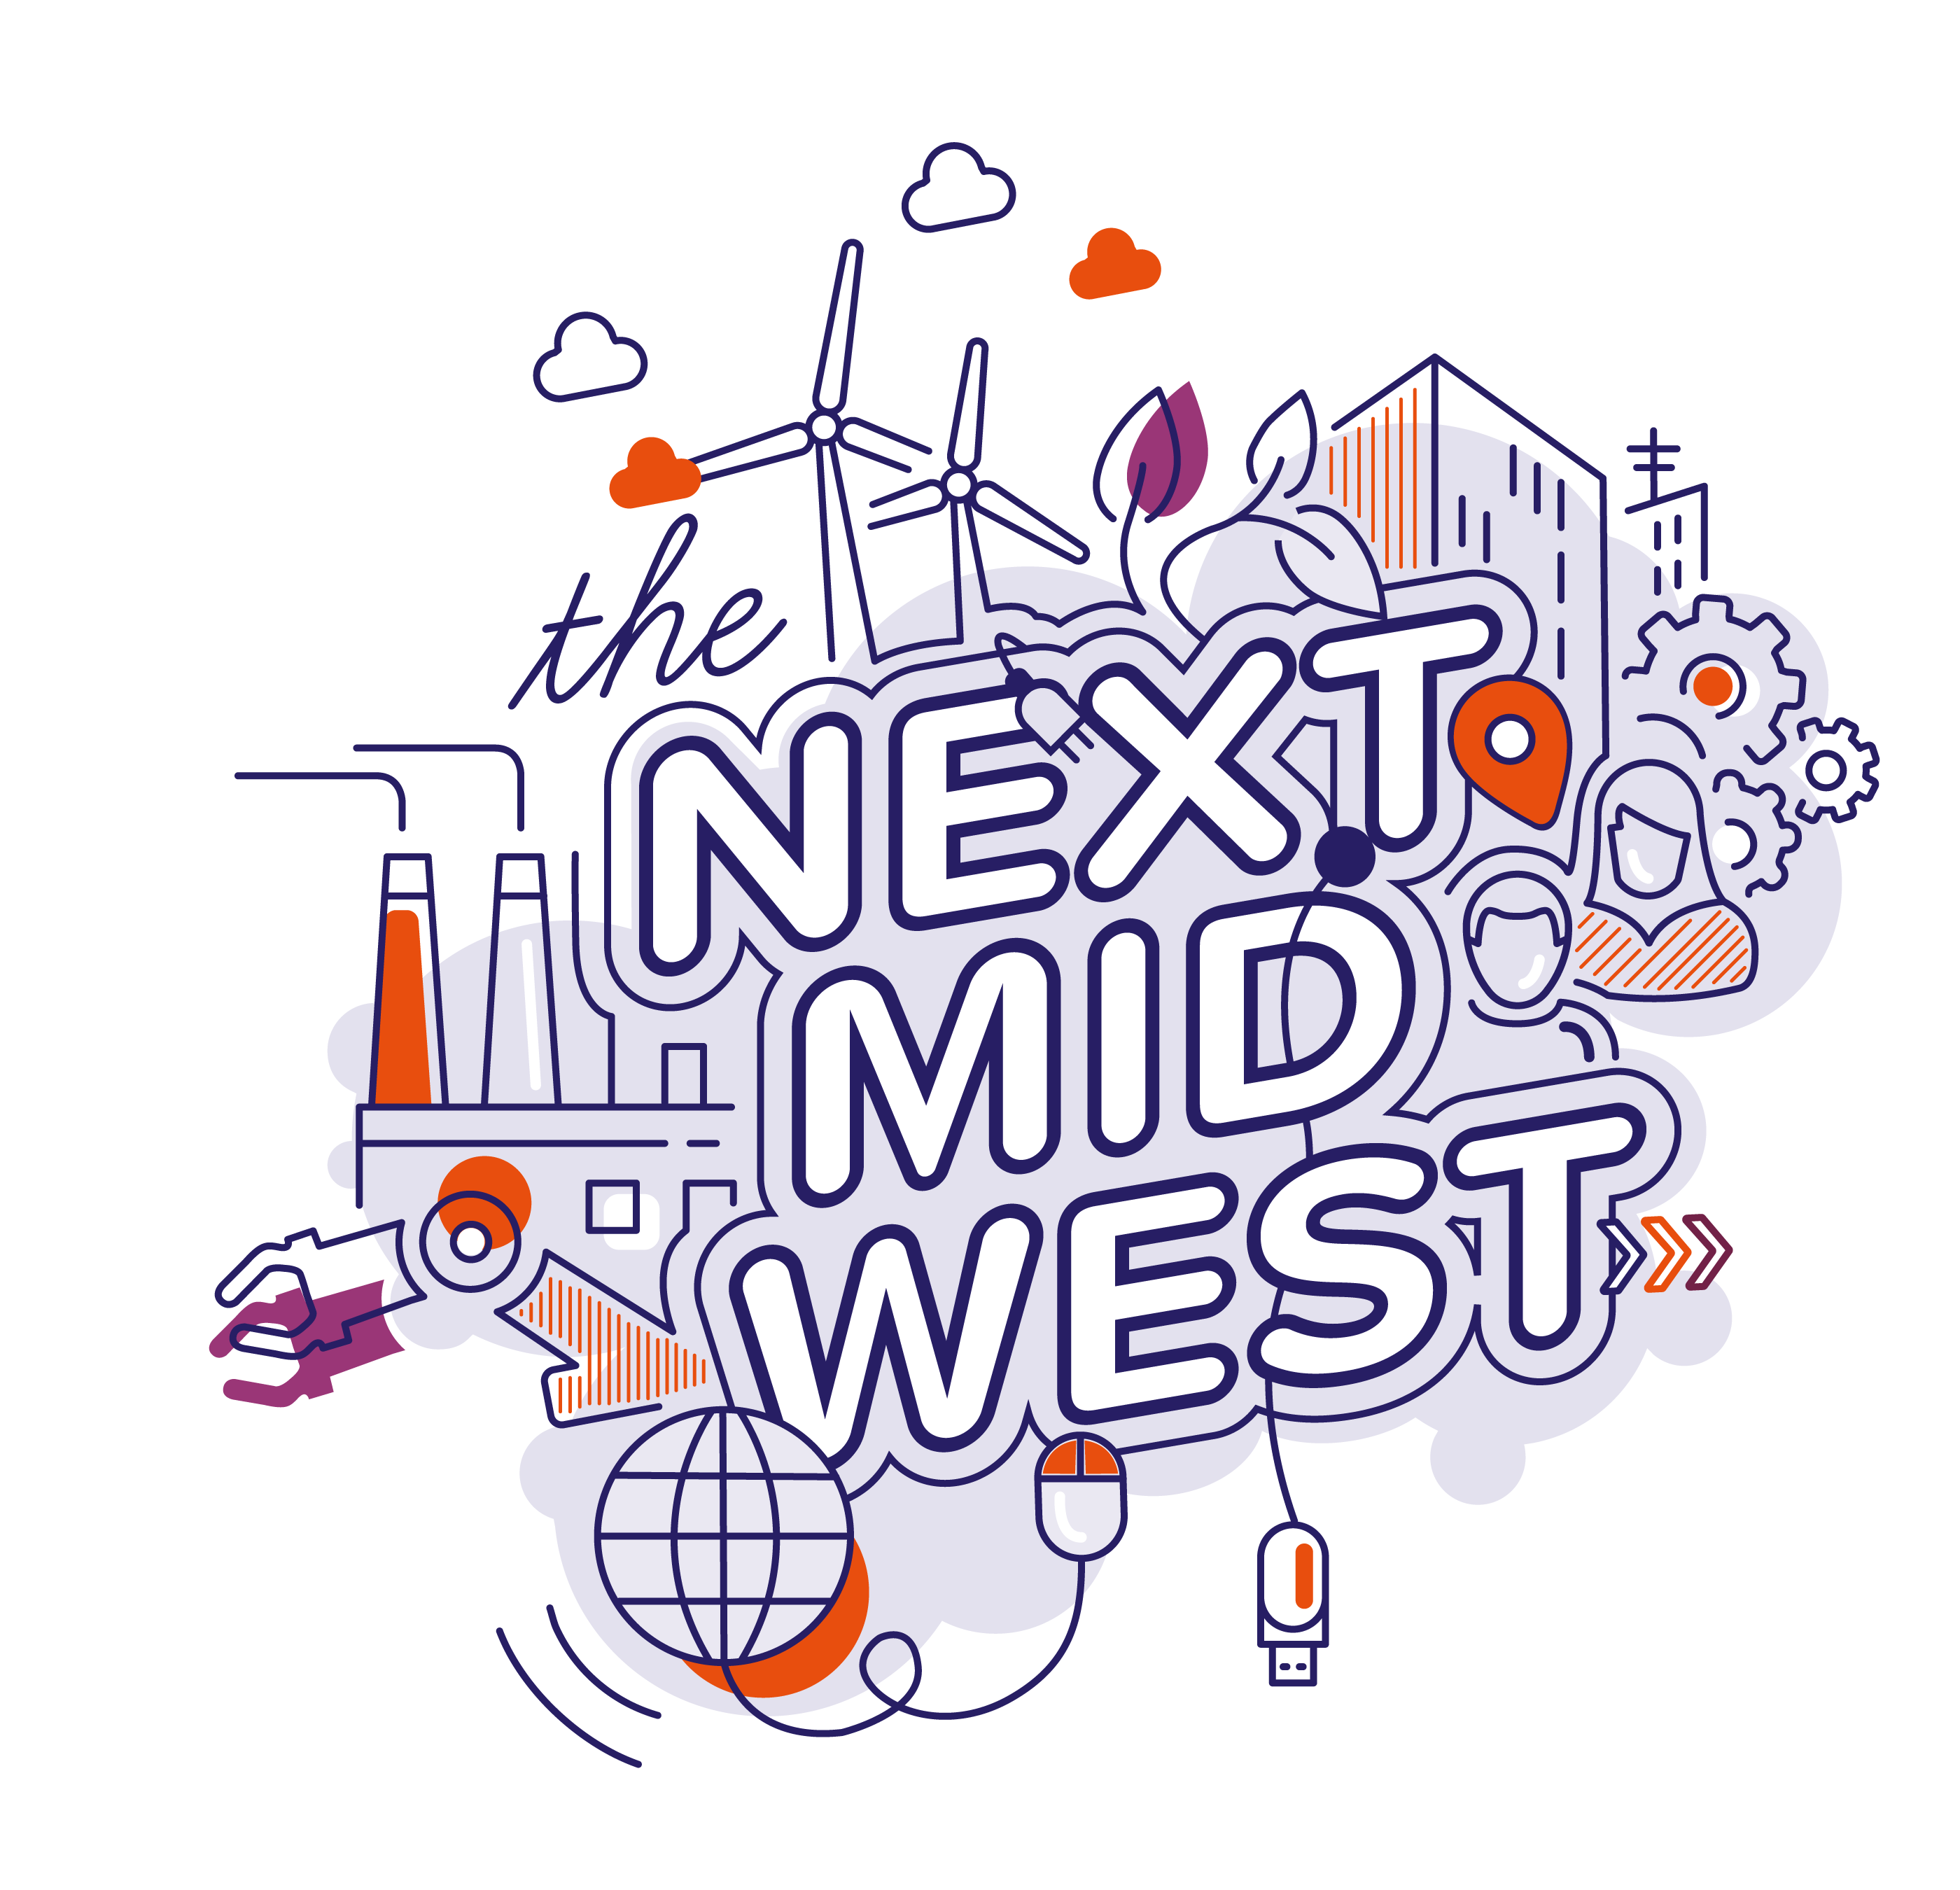 20180619-The-next-midwest-beeld-DEF